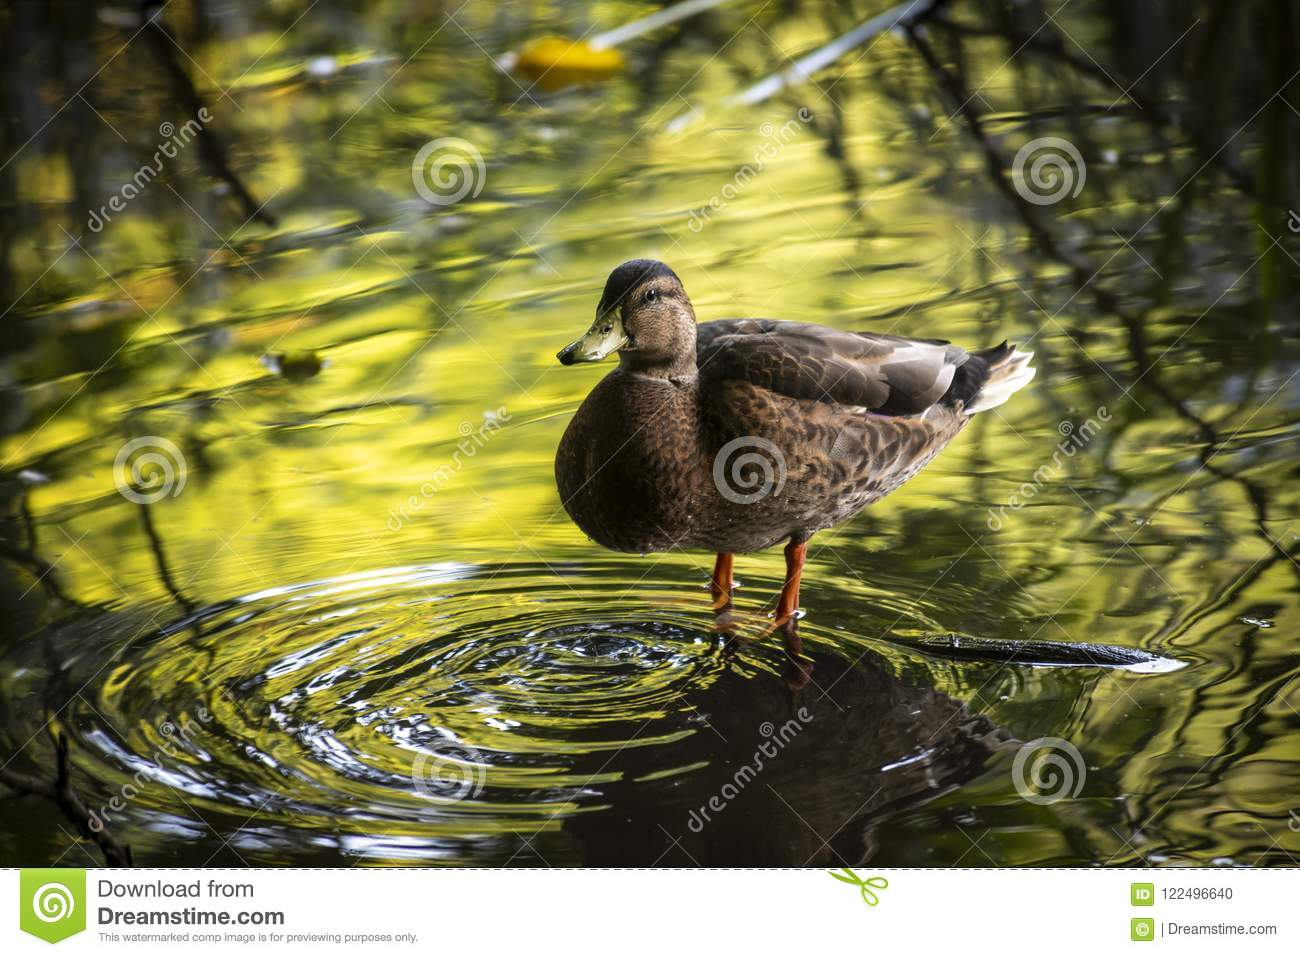 newest 04fdd 9c61c Duck In Water Reflection Nature Ecology Save Live Stock ...